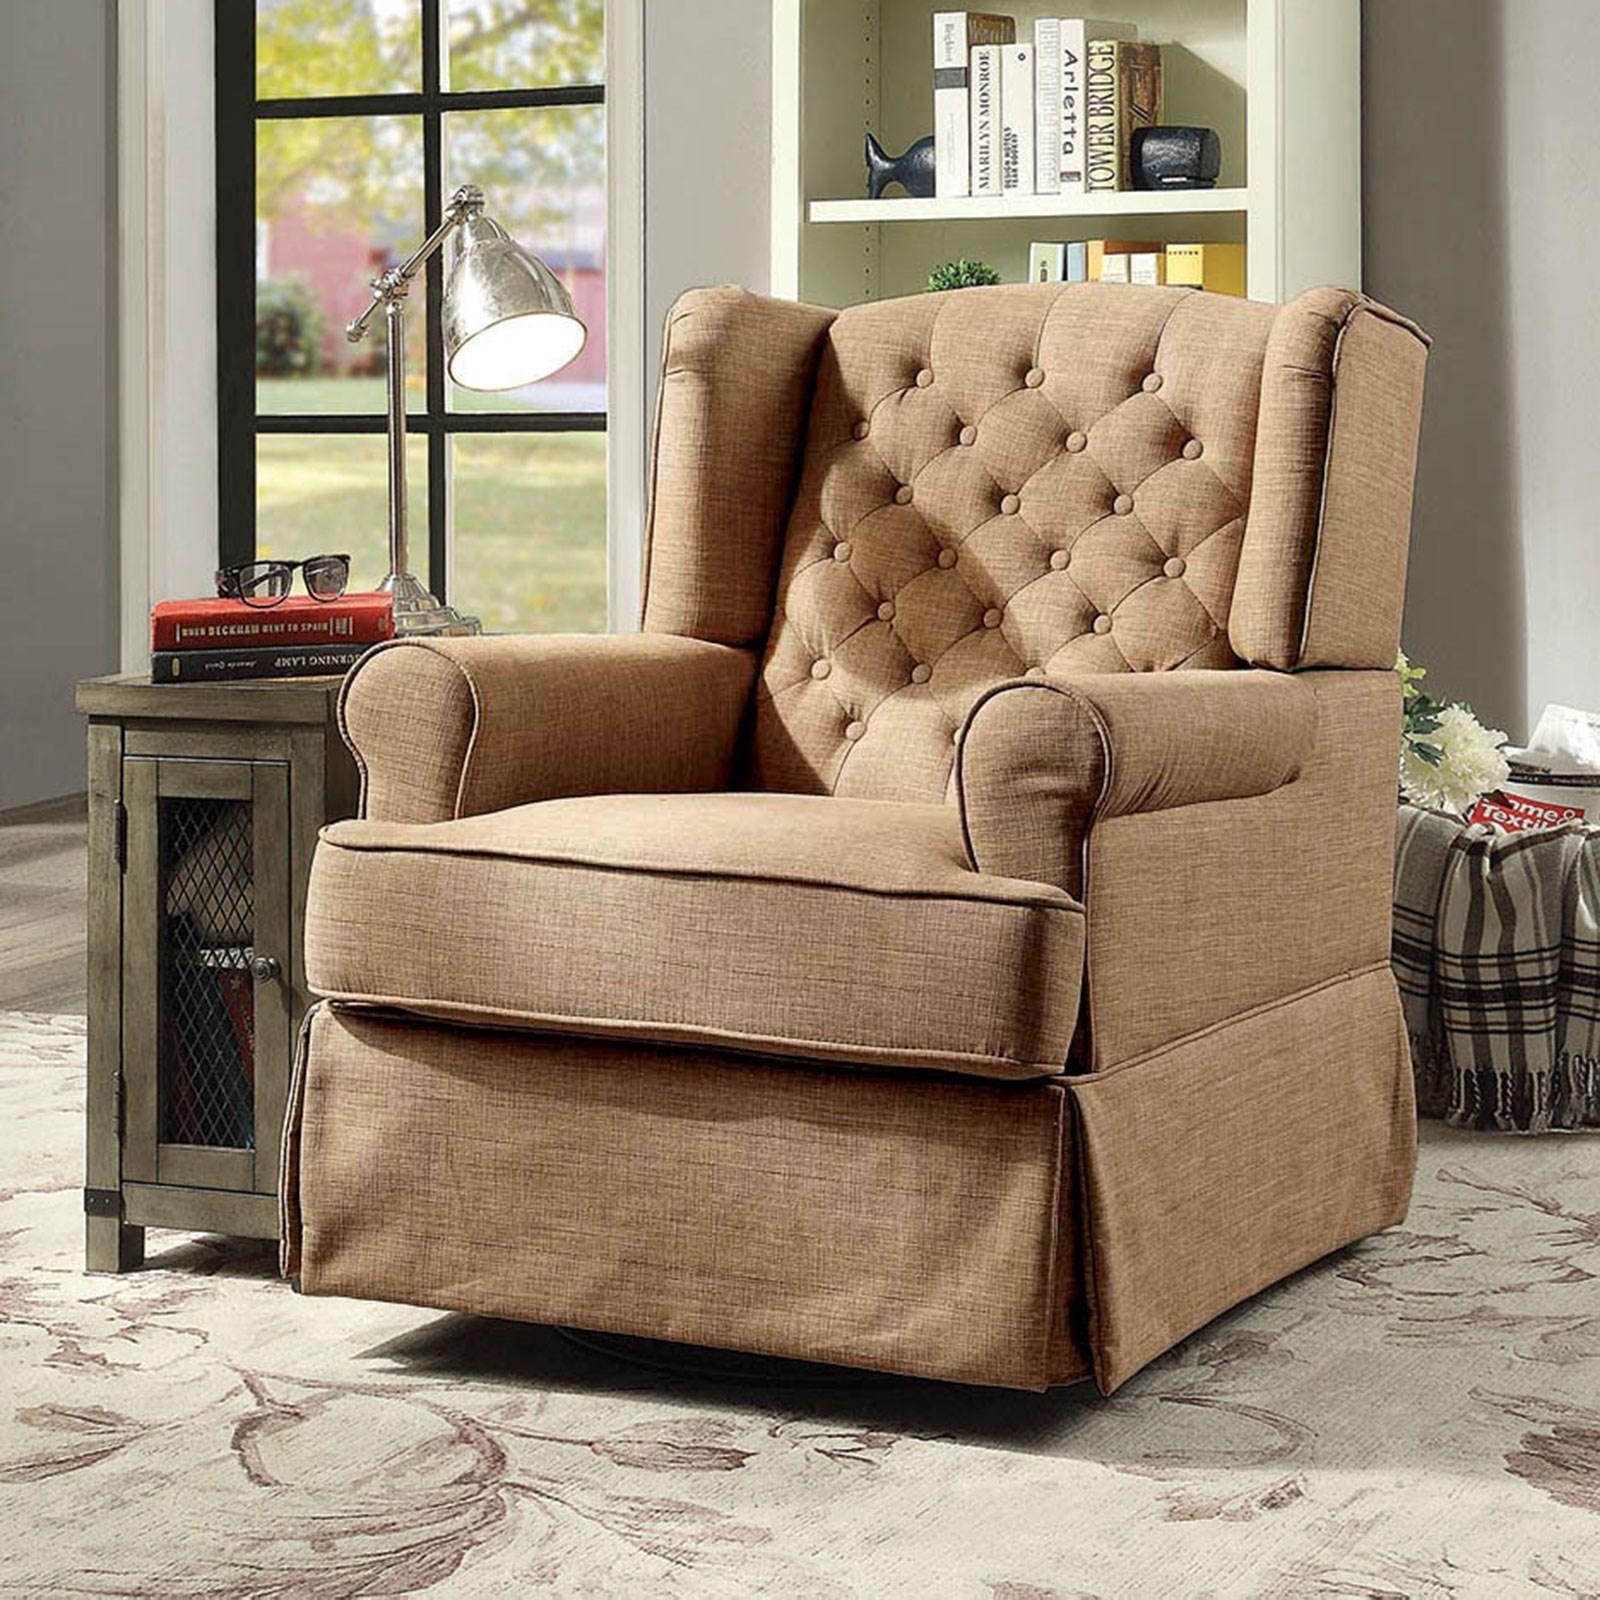 Prime Paloma Transitional Rocking Chair With Winged Back By Furniture Of America At Rooms For Less Download Free Architecture Designs Scobabritishbridgeorg